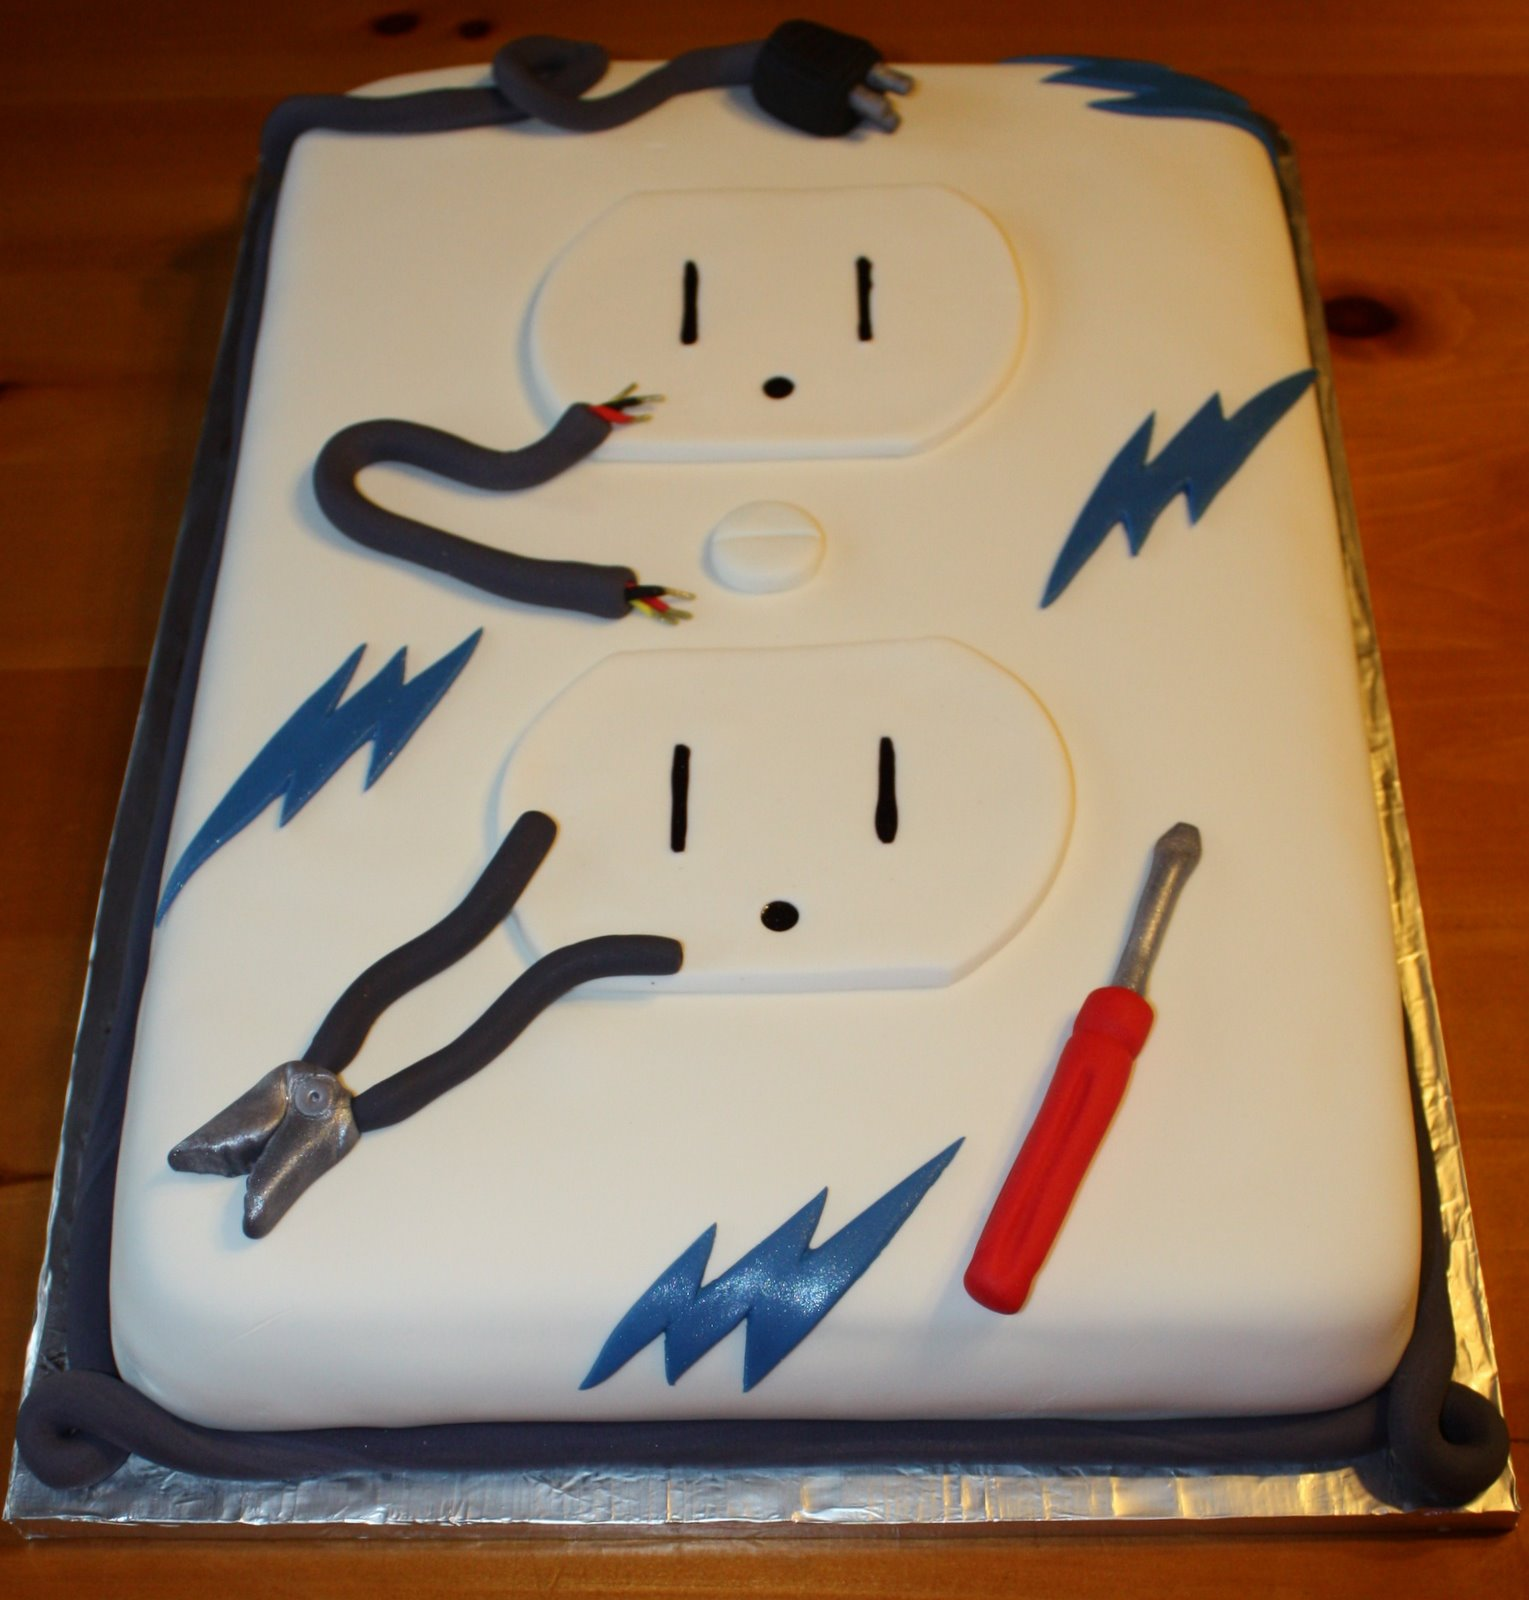 Electrician Cake Decorations http://community.babycenter.com/post/a39223144/cake_ideas